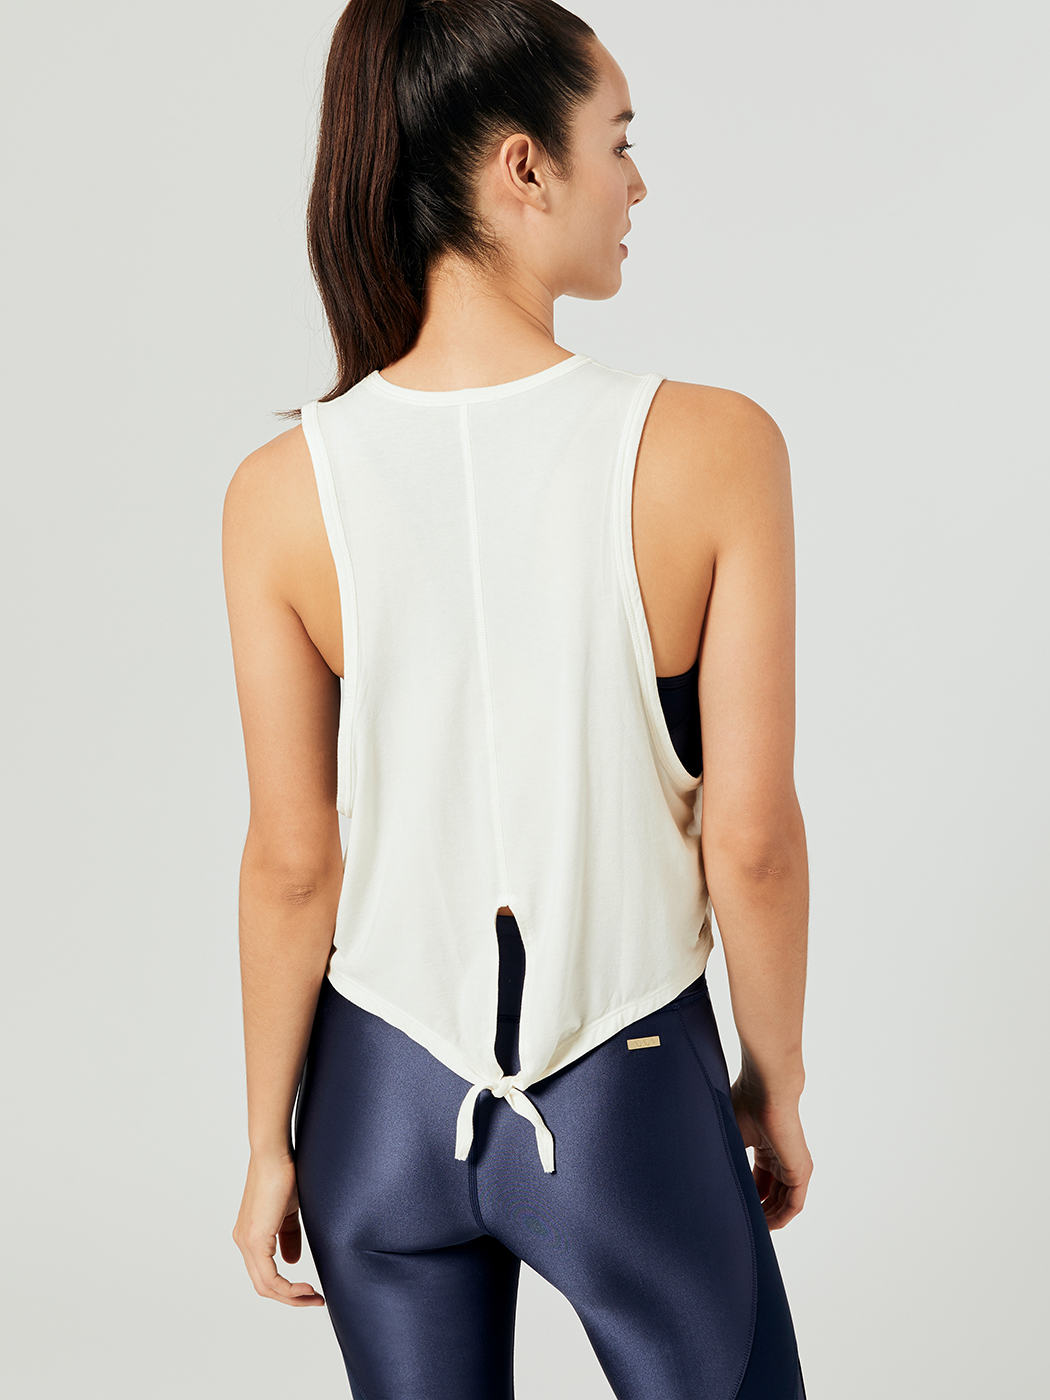 a9b5d2a3c478da Tie Back Jersey Tank Tops in Ivory by Alala from Carbon38